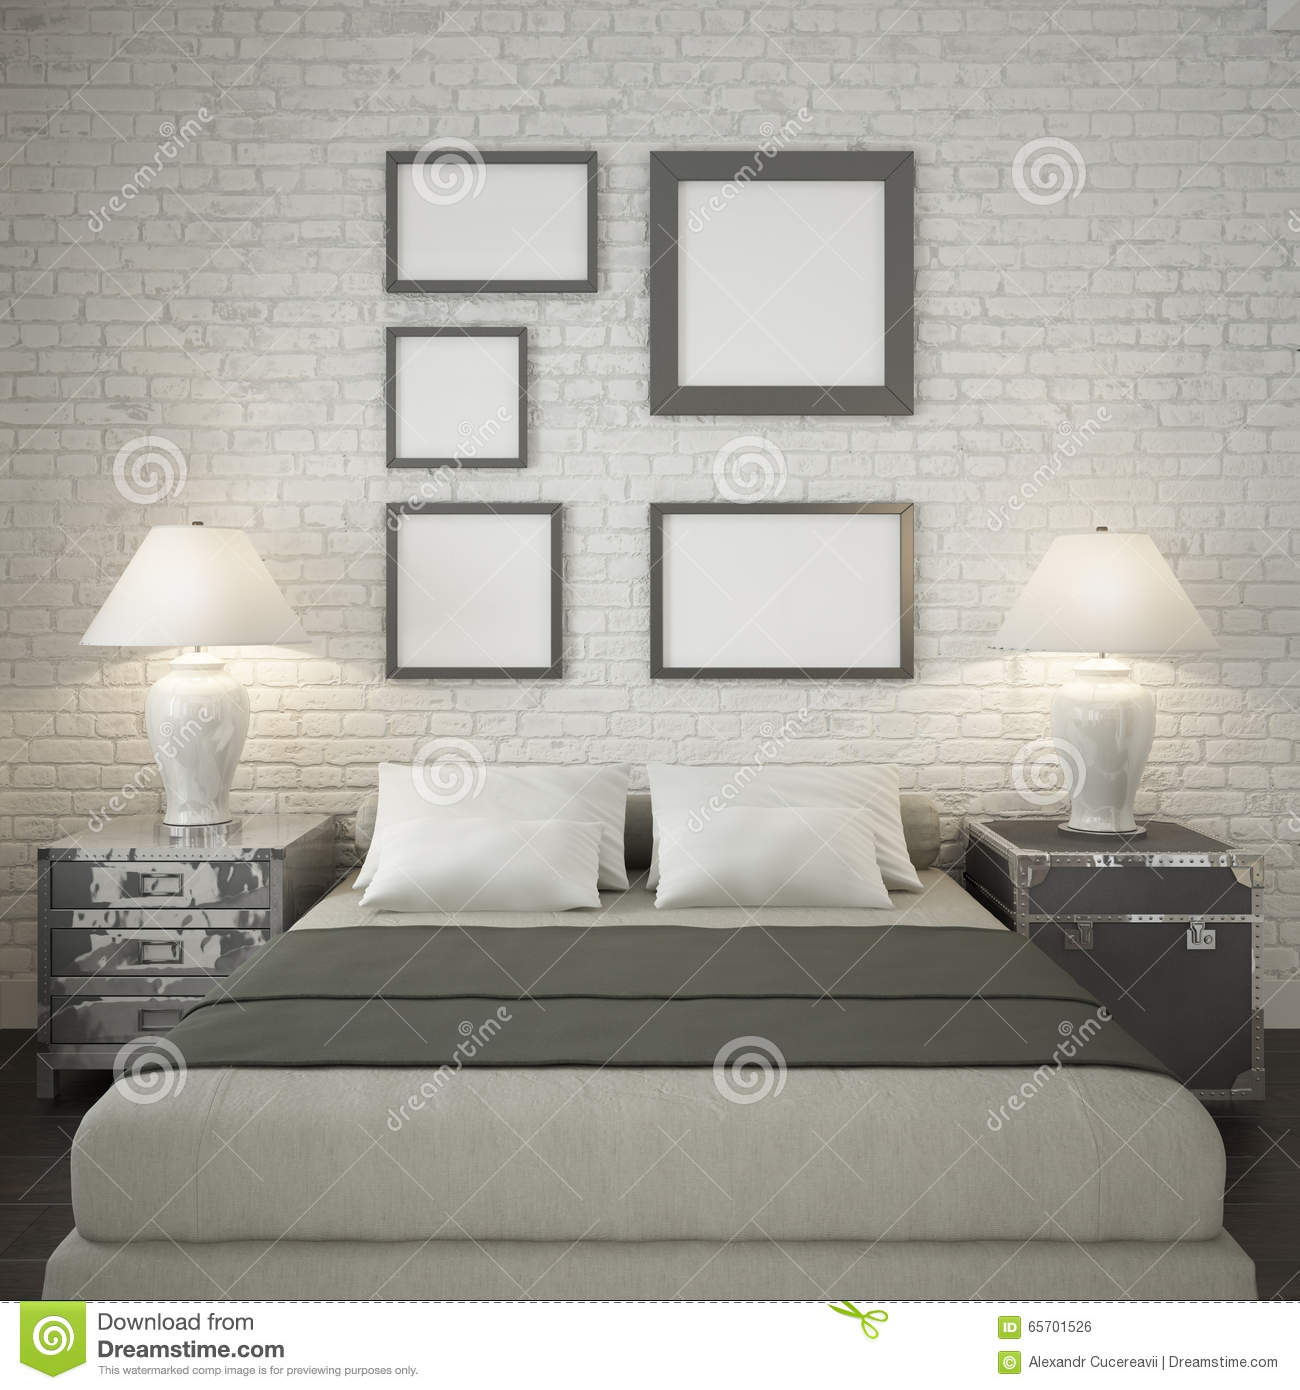 Brick Bed Frames Mock Up Poster Frames At The White Brick Wall Of Bedroom